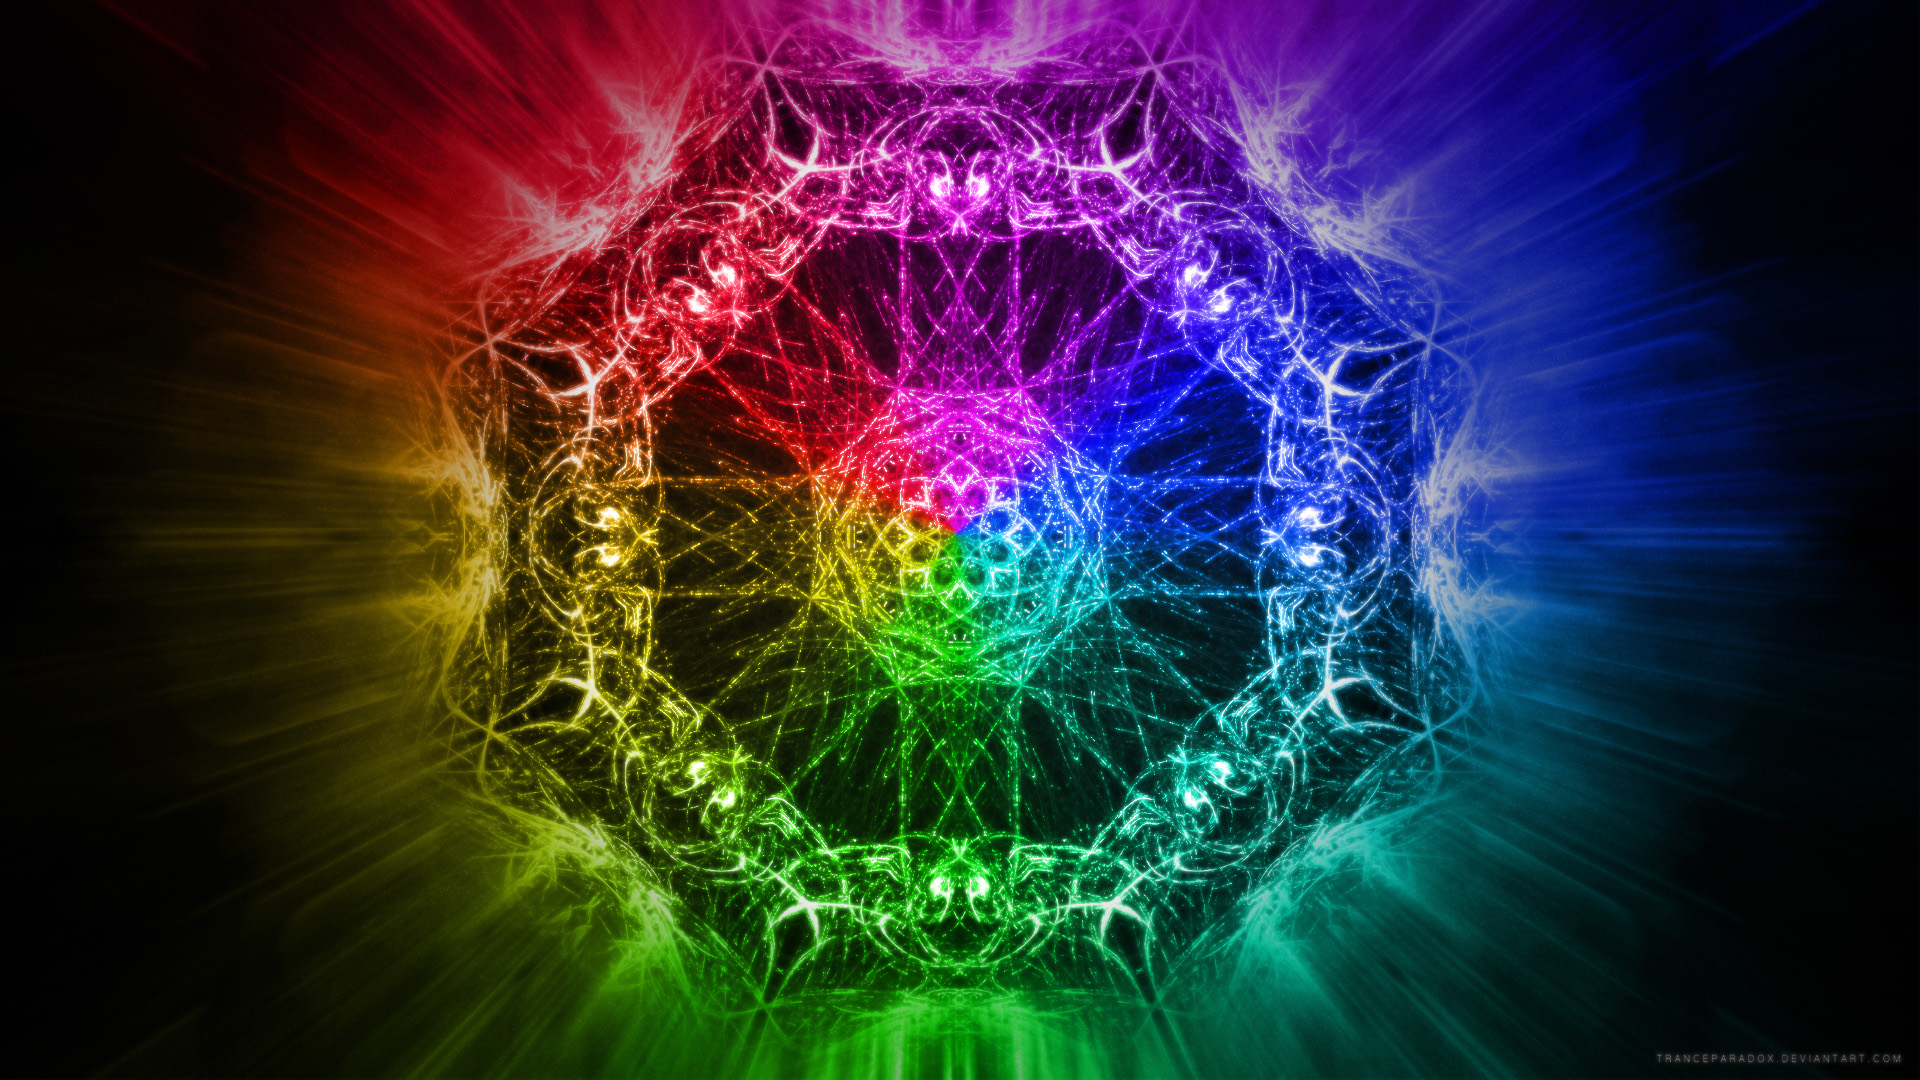 Images of Psychedelic Trance Free Download - #rock-cafe